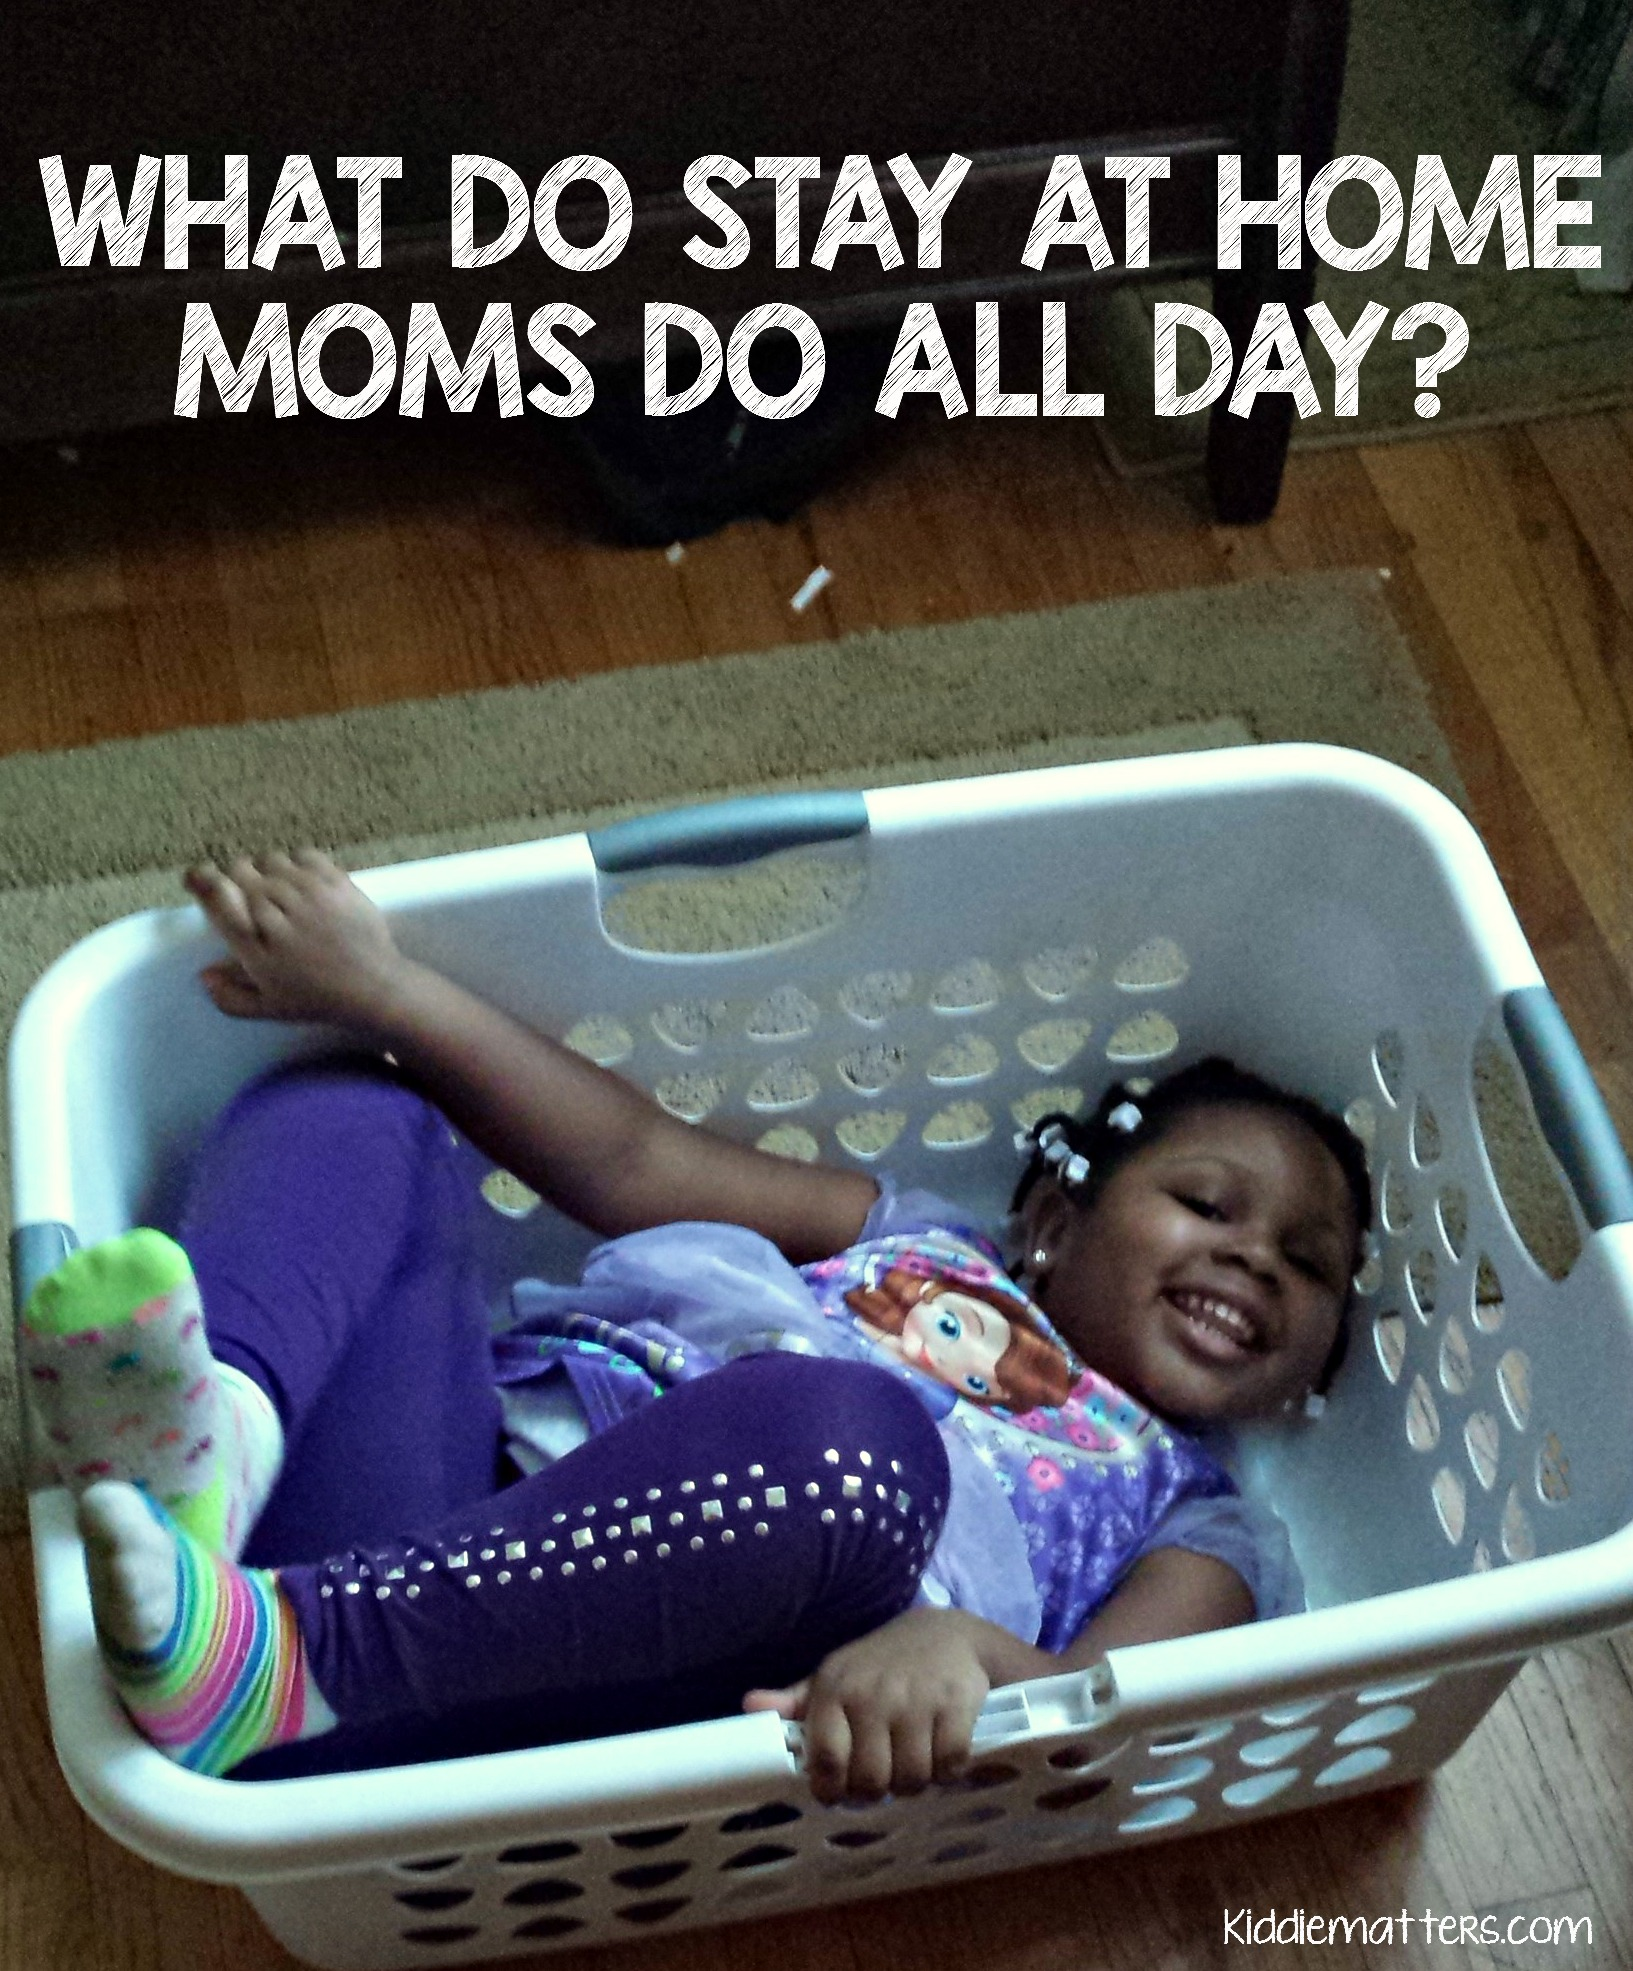 What Do Stay at Home Moms Do All Day?